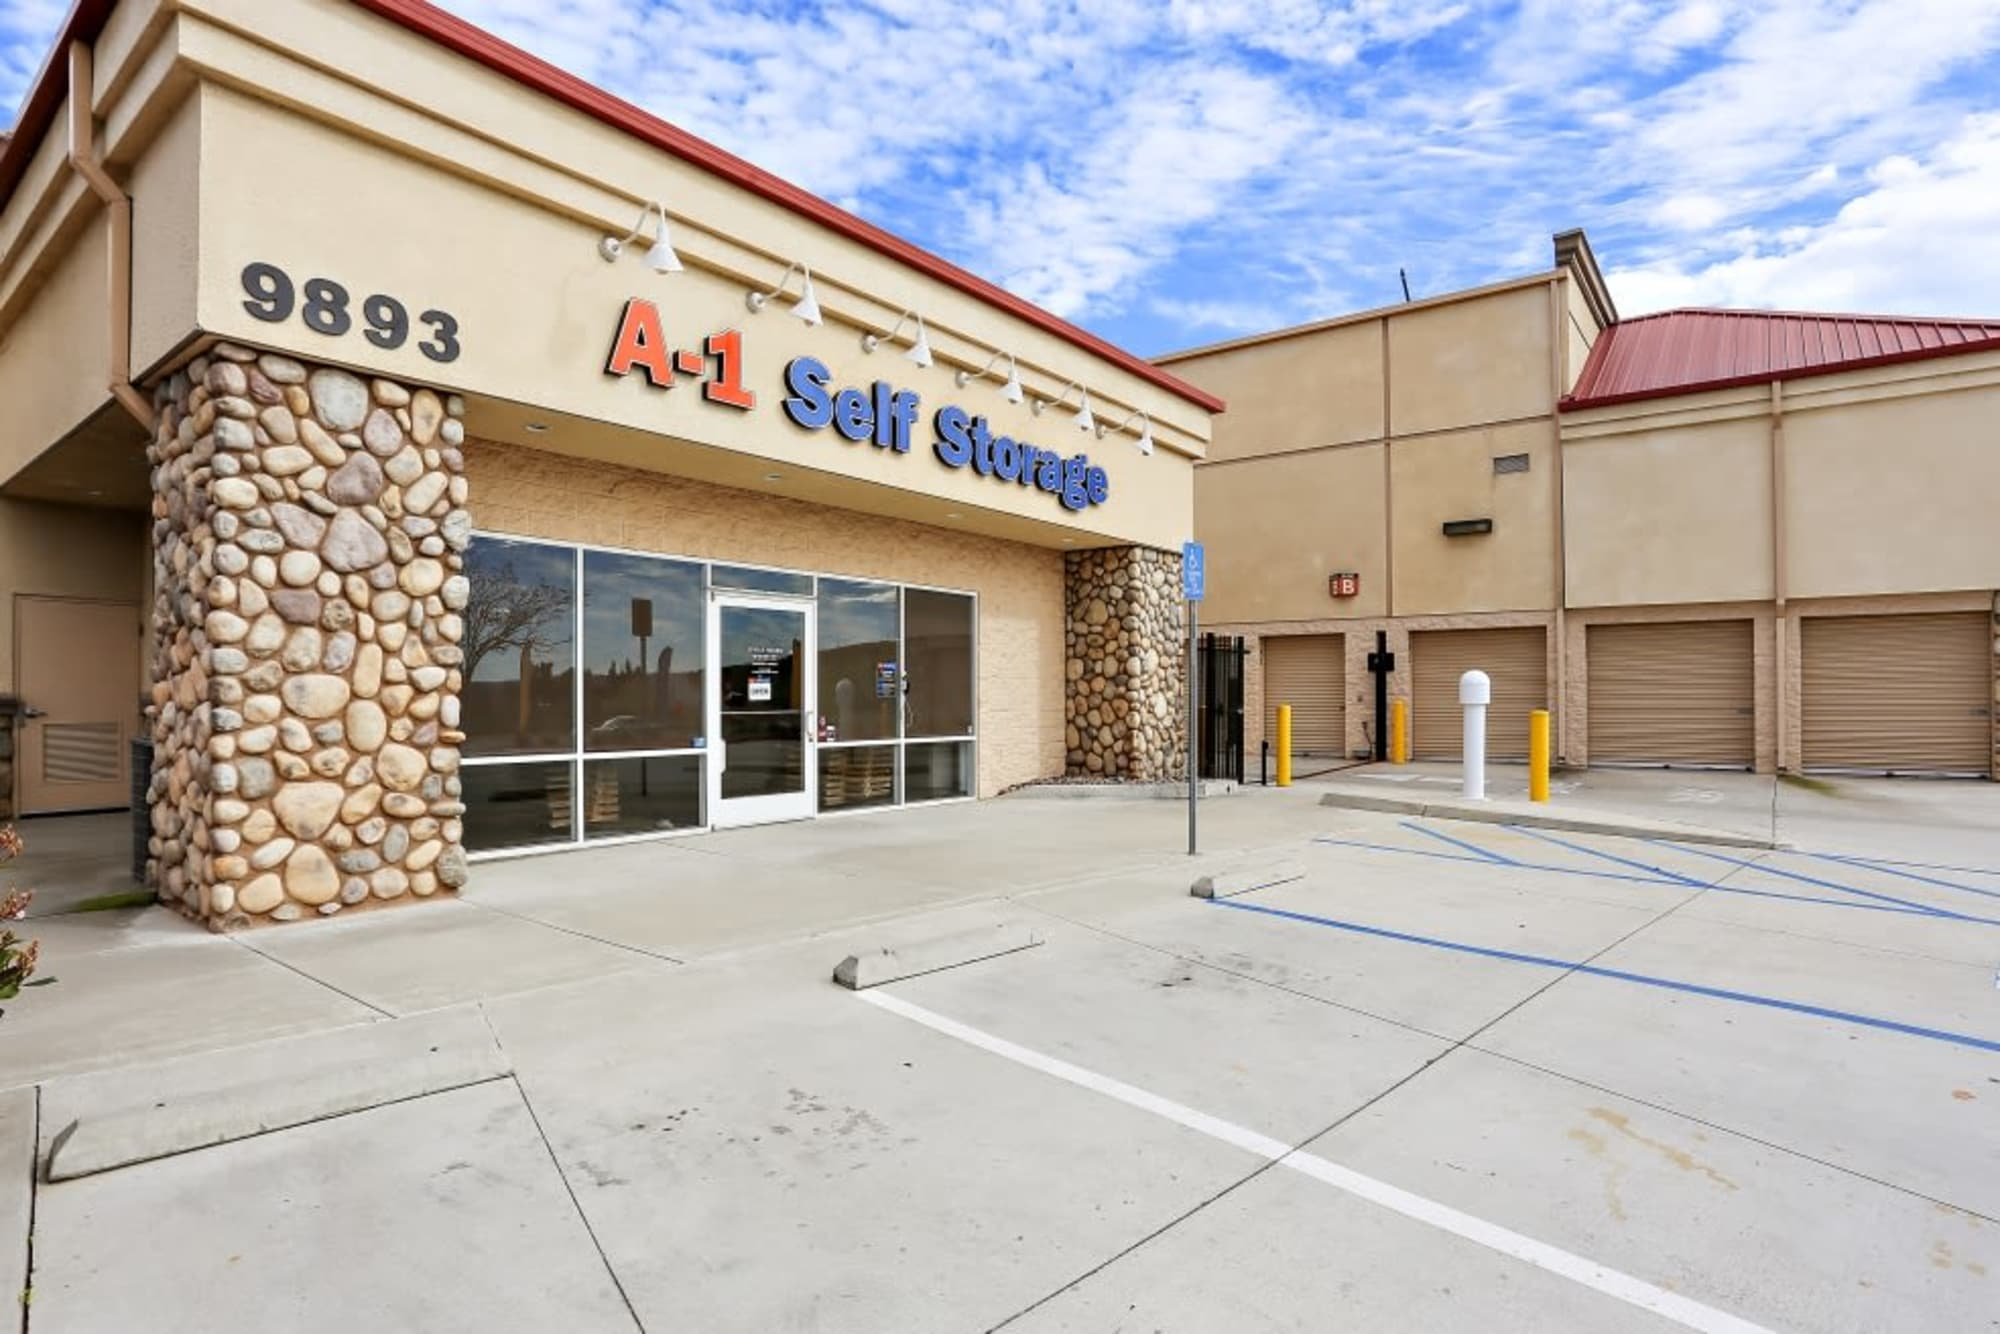 The front entrance of A-1 Self Storage in Lakeside, California